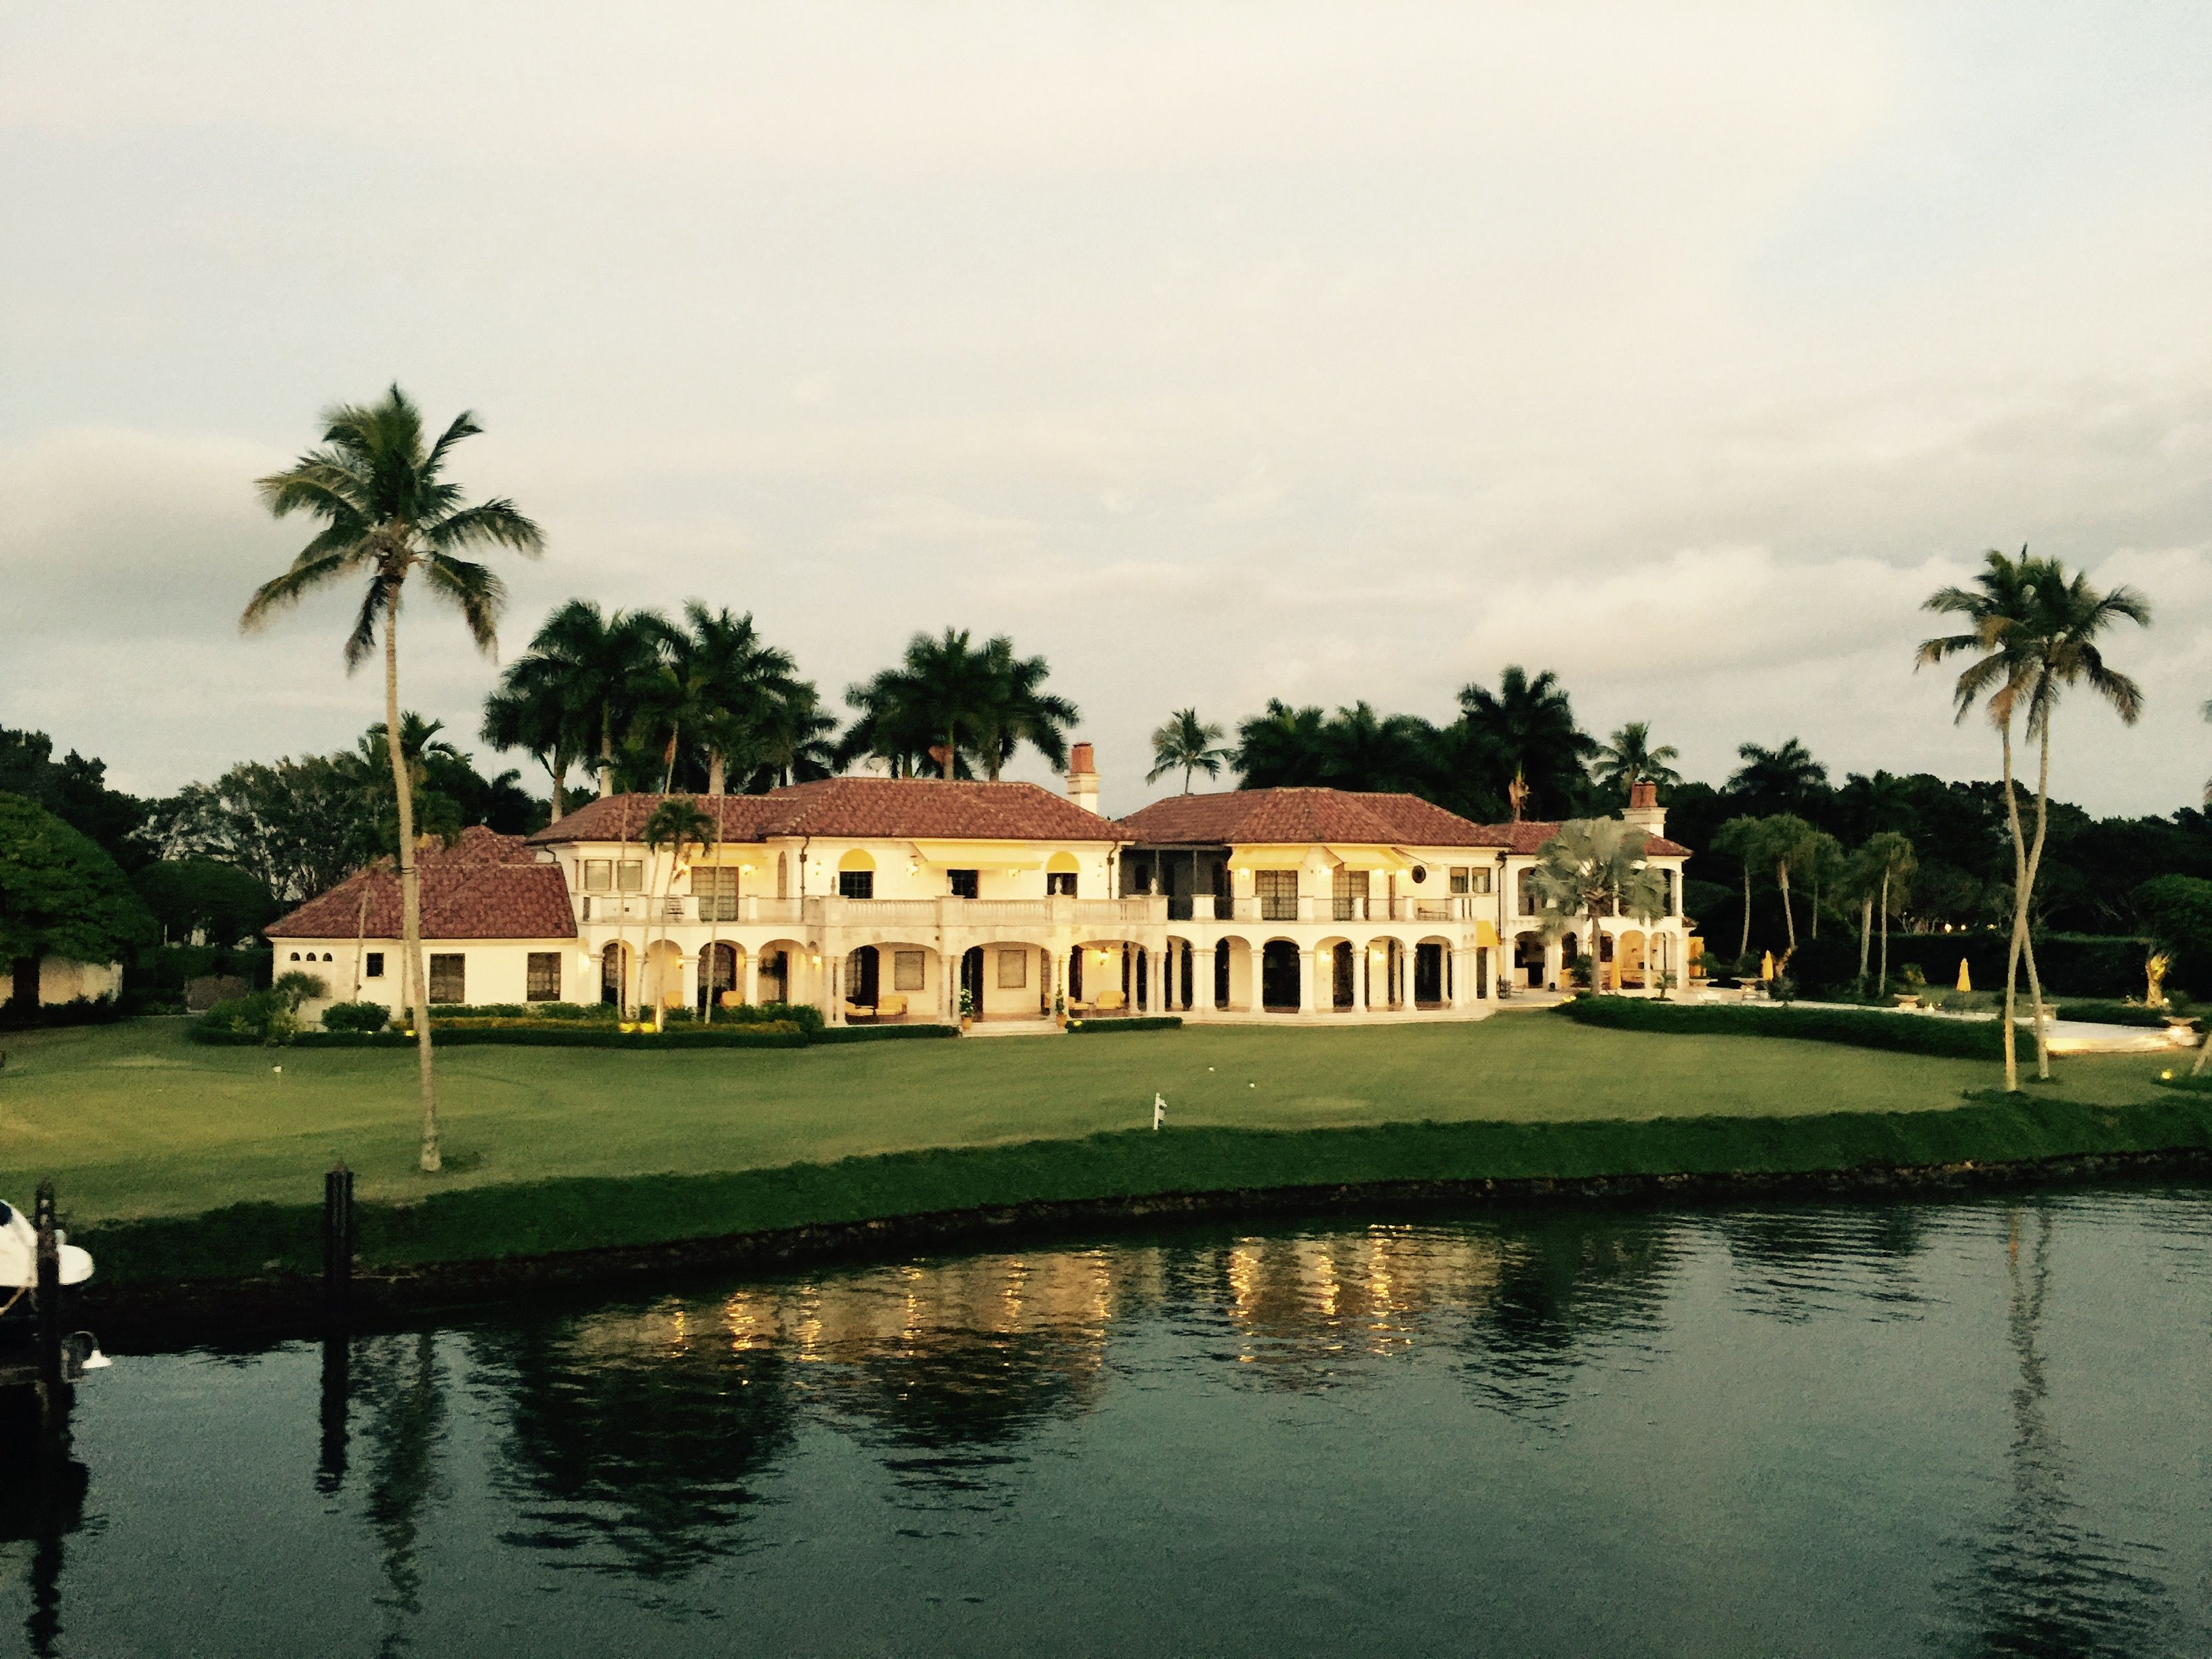 Port Royal Homes For Sale. Naples, FL #naples